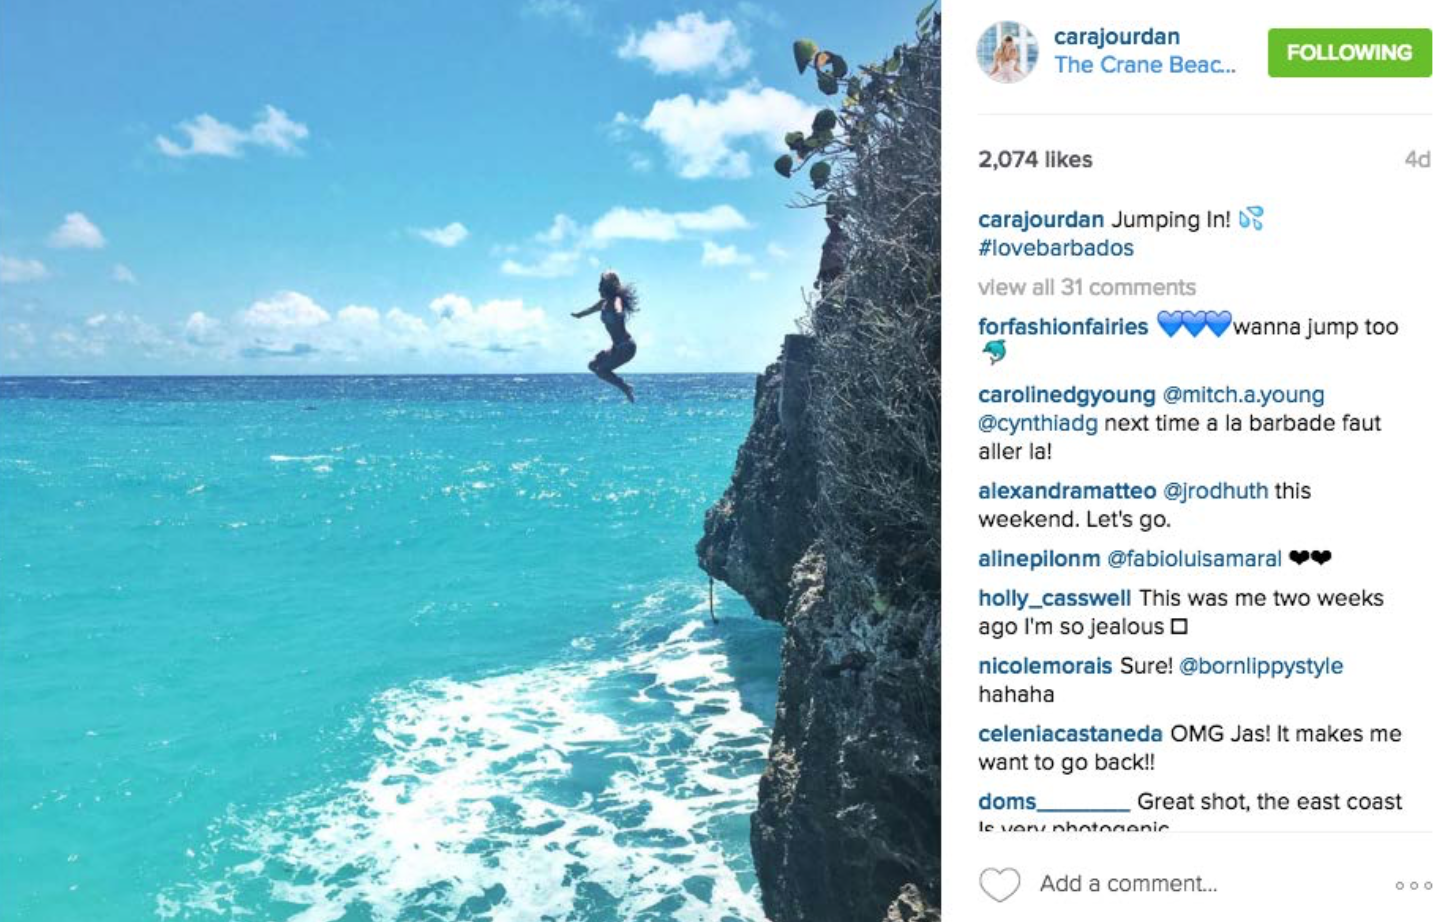 @carajourdan Instagram: Jumping in! #lovebarbados